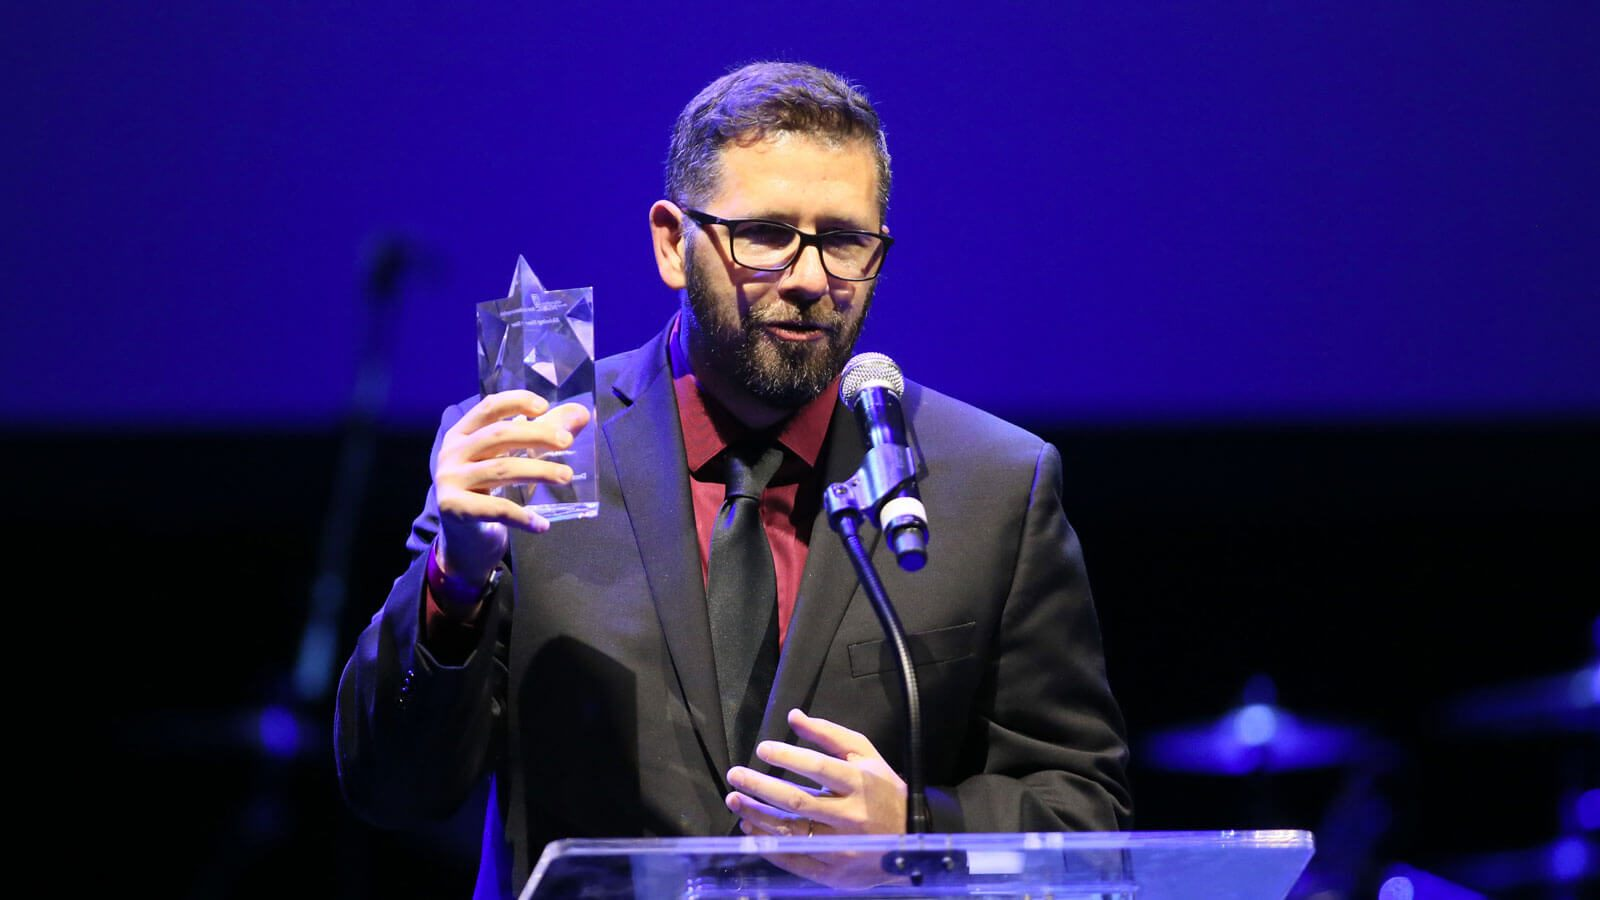 Sebastian Krys Named 2018 Shining Star Honoree by Education Through Music - Hero image